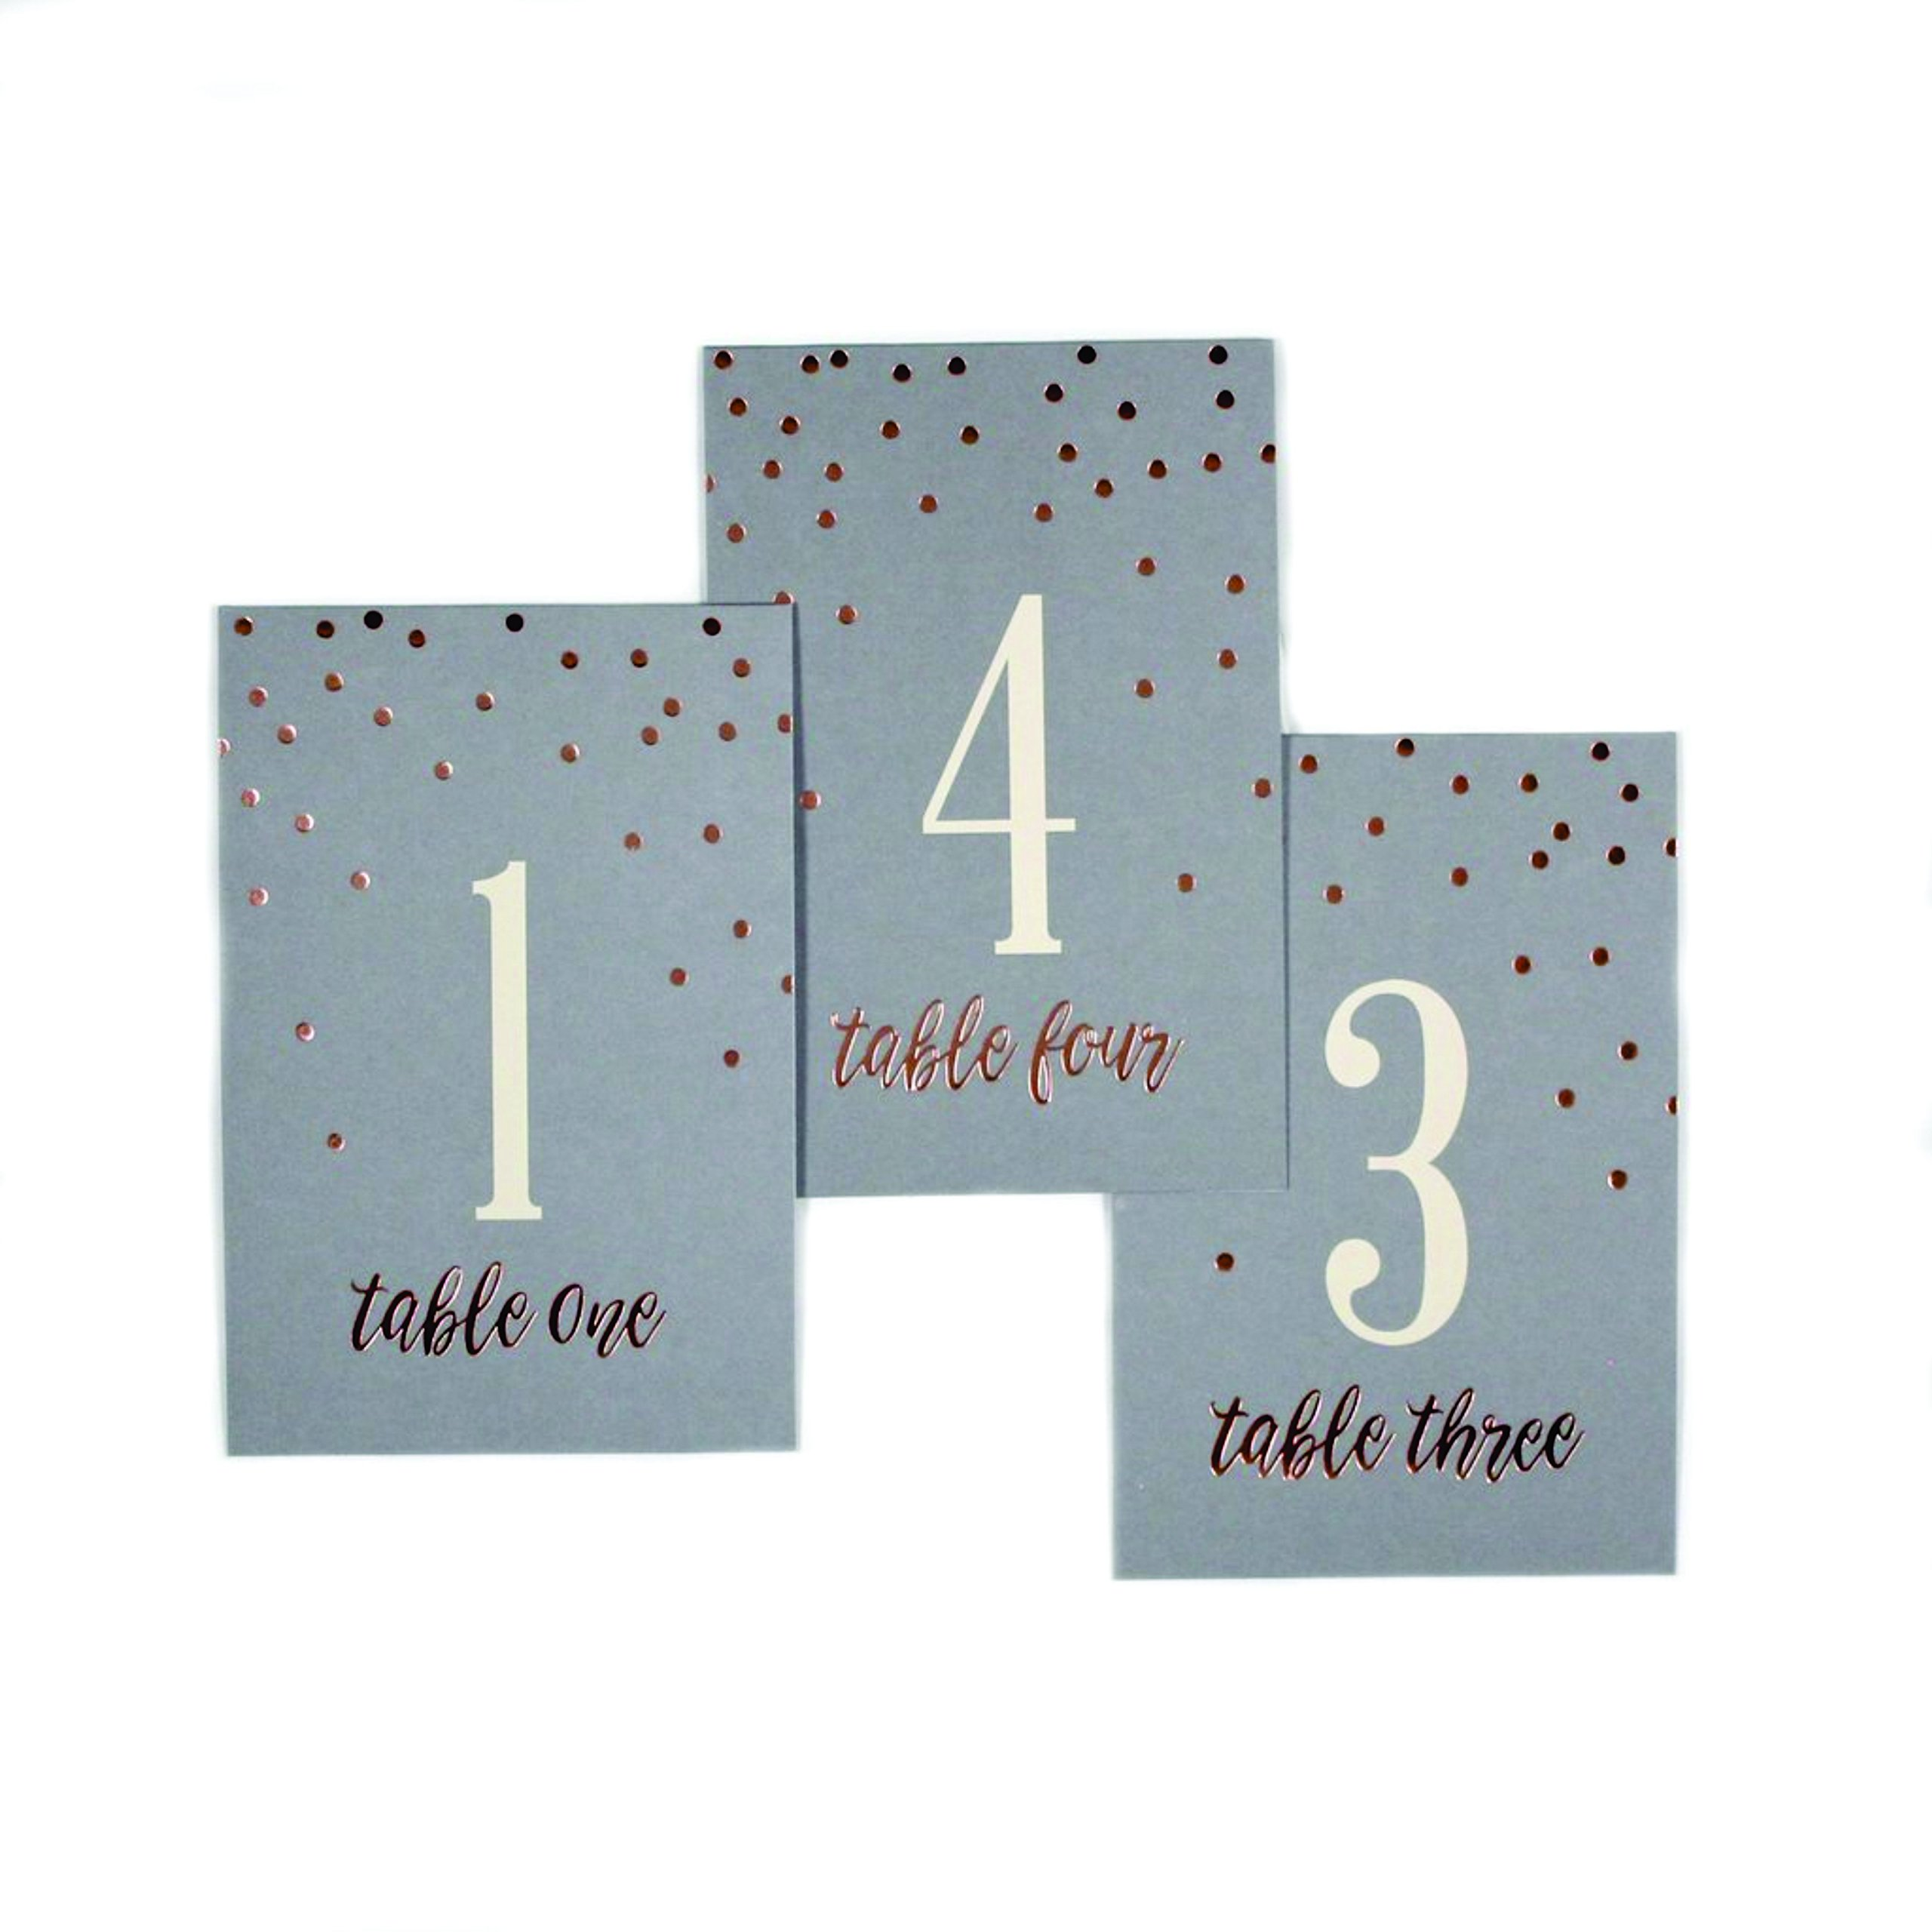 Paper Love Set of 24 Grey Glam Wedding Table Numbers with Gold Foil by Paper Love (Image #1)